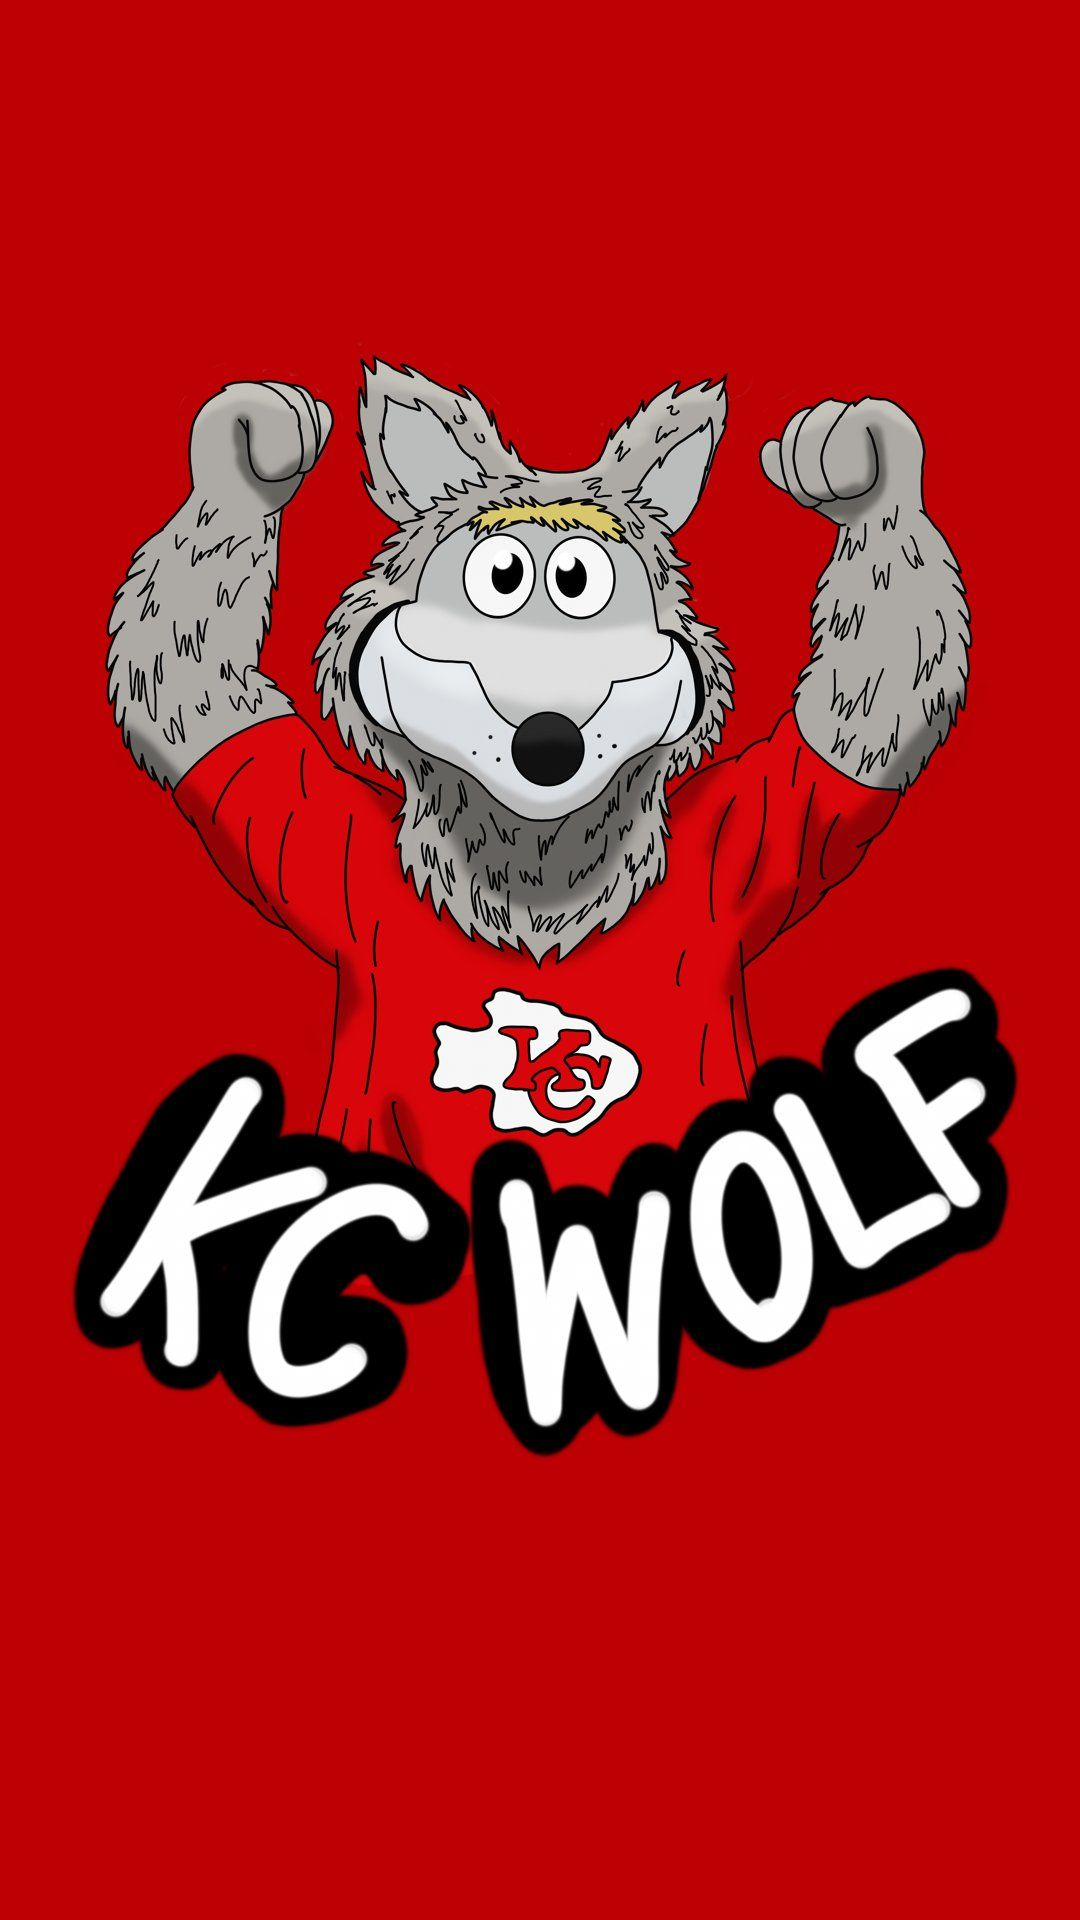 Kc Wolf In 2020 Kansas City Chiefs Football Kansas City Chiefs Logo Nfl Kansas City Chiefs